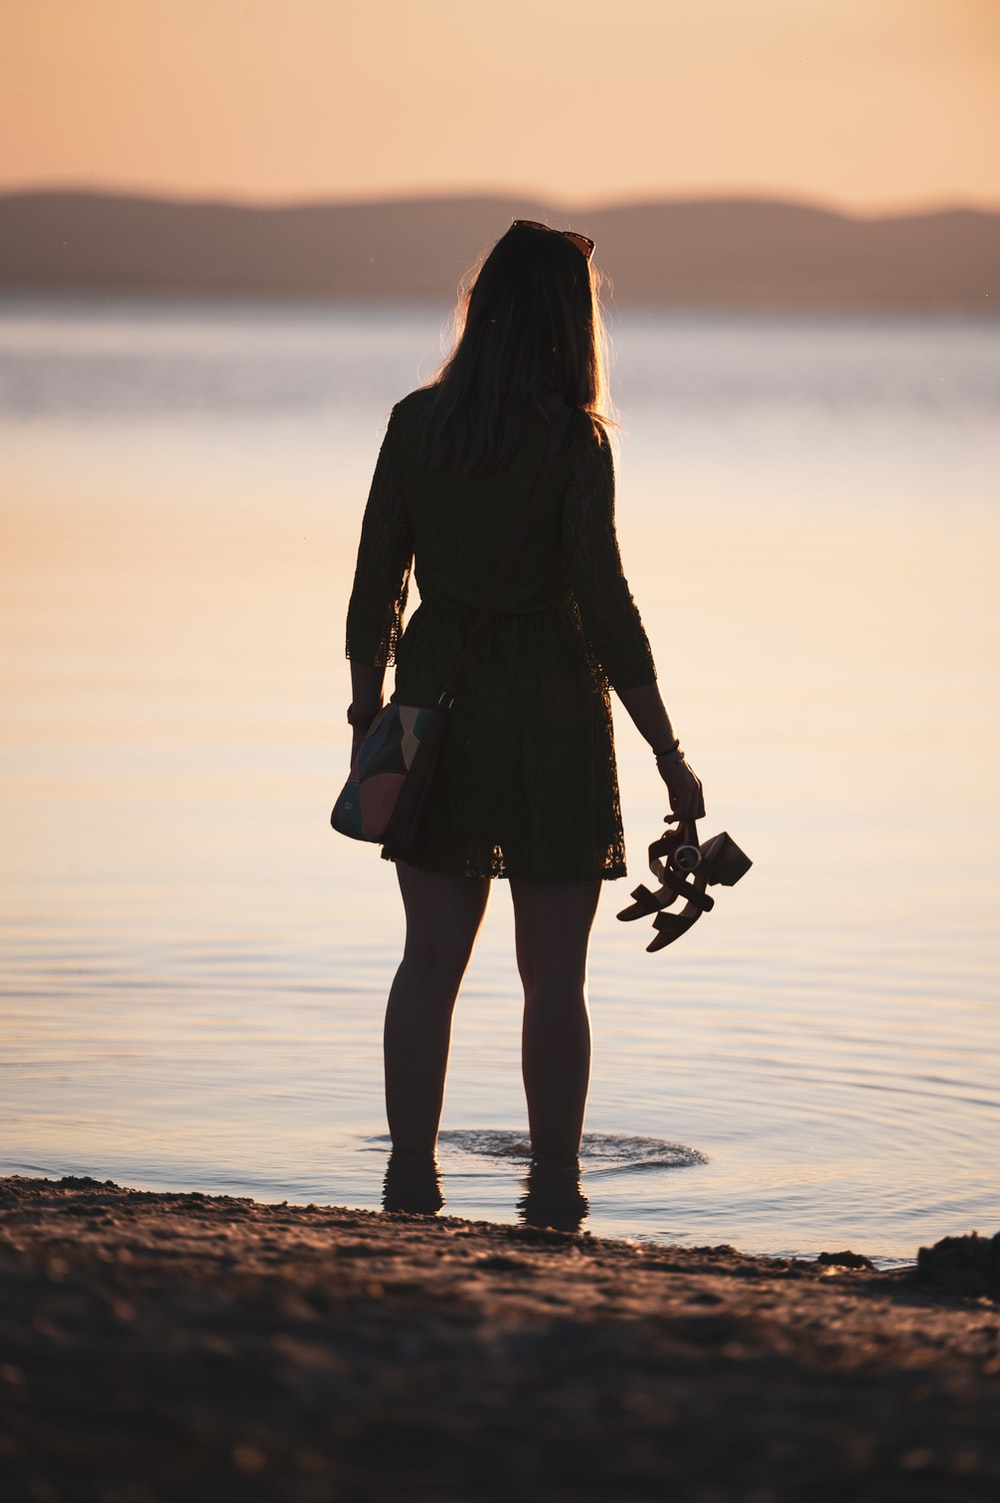 woman in black coat standing on beach during sunset